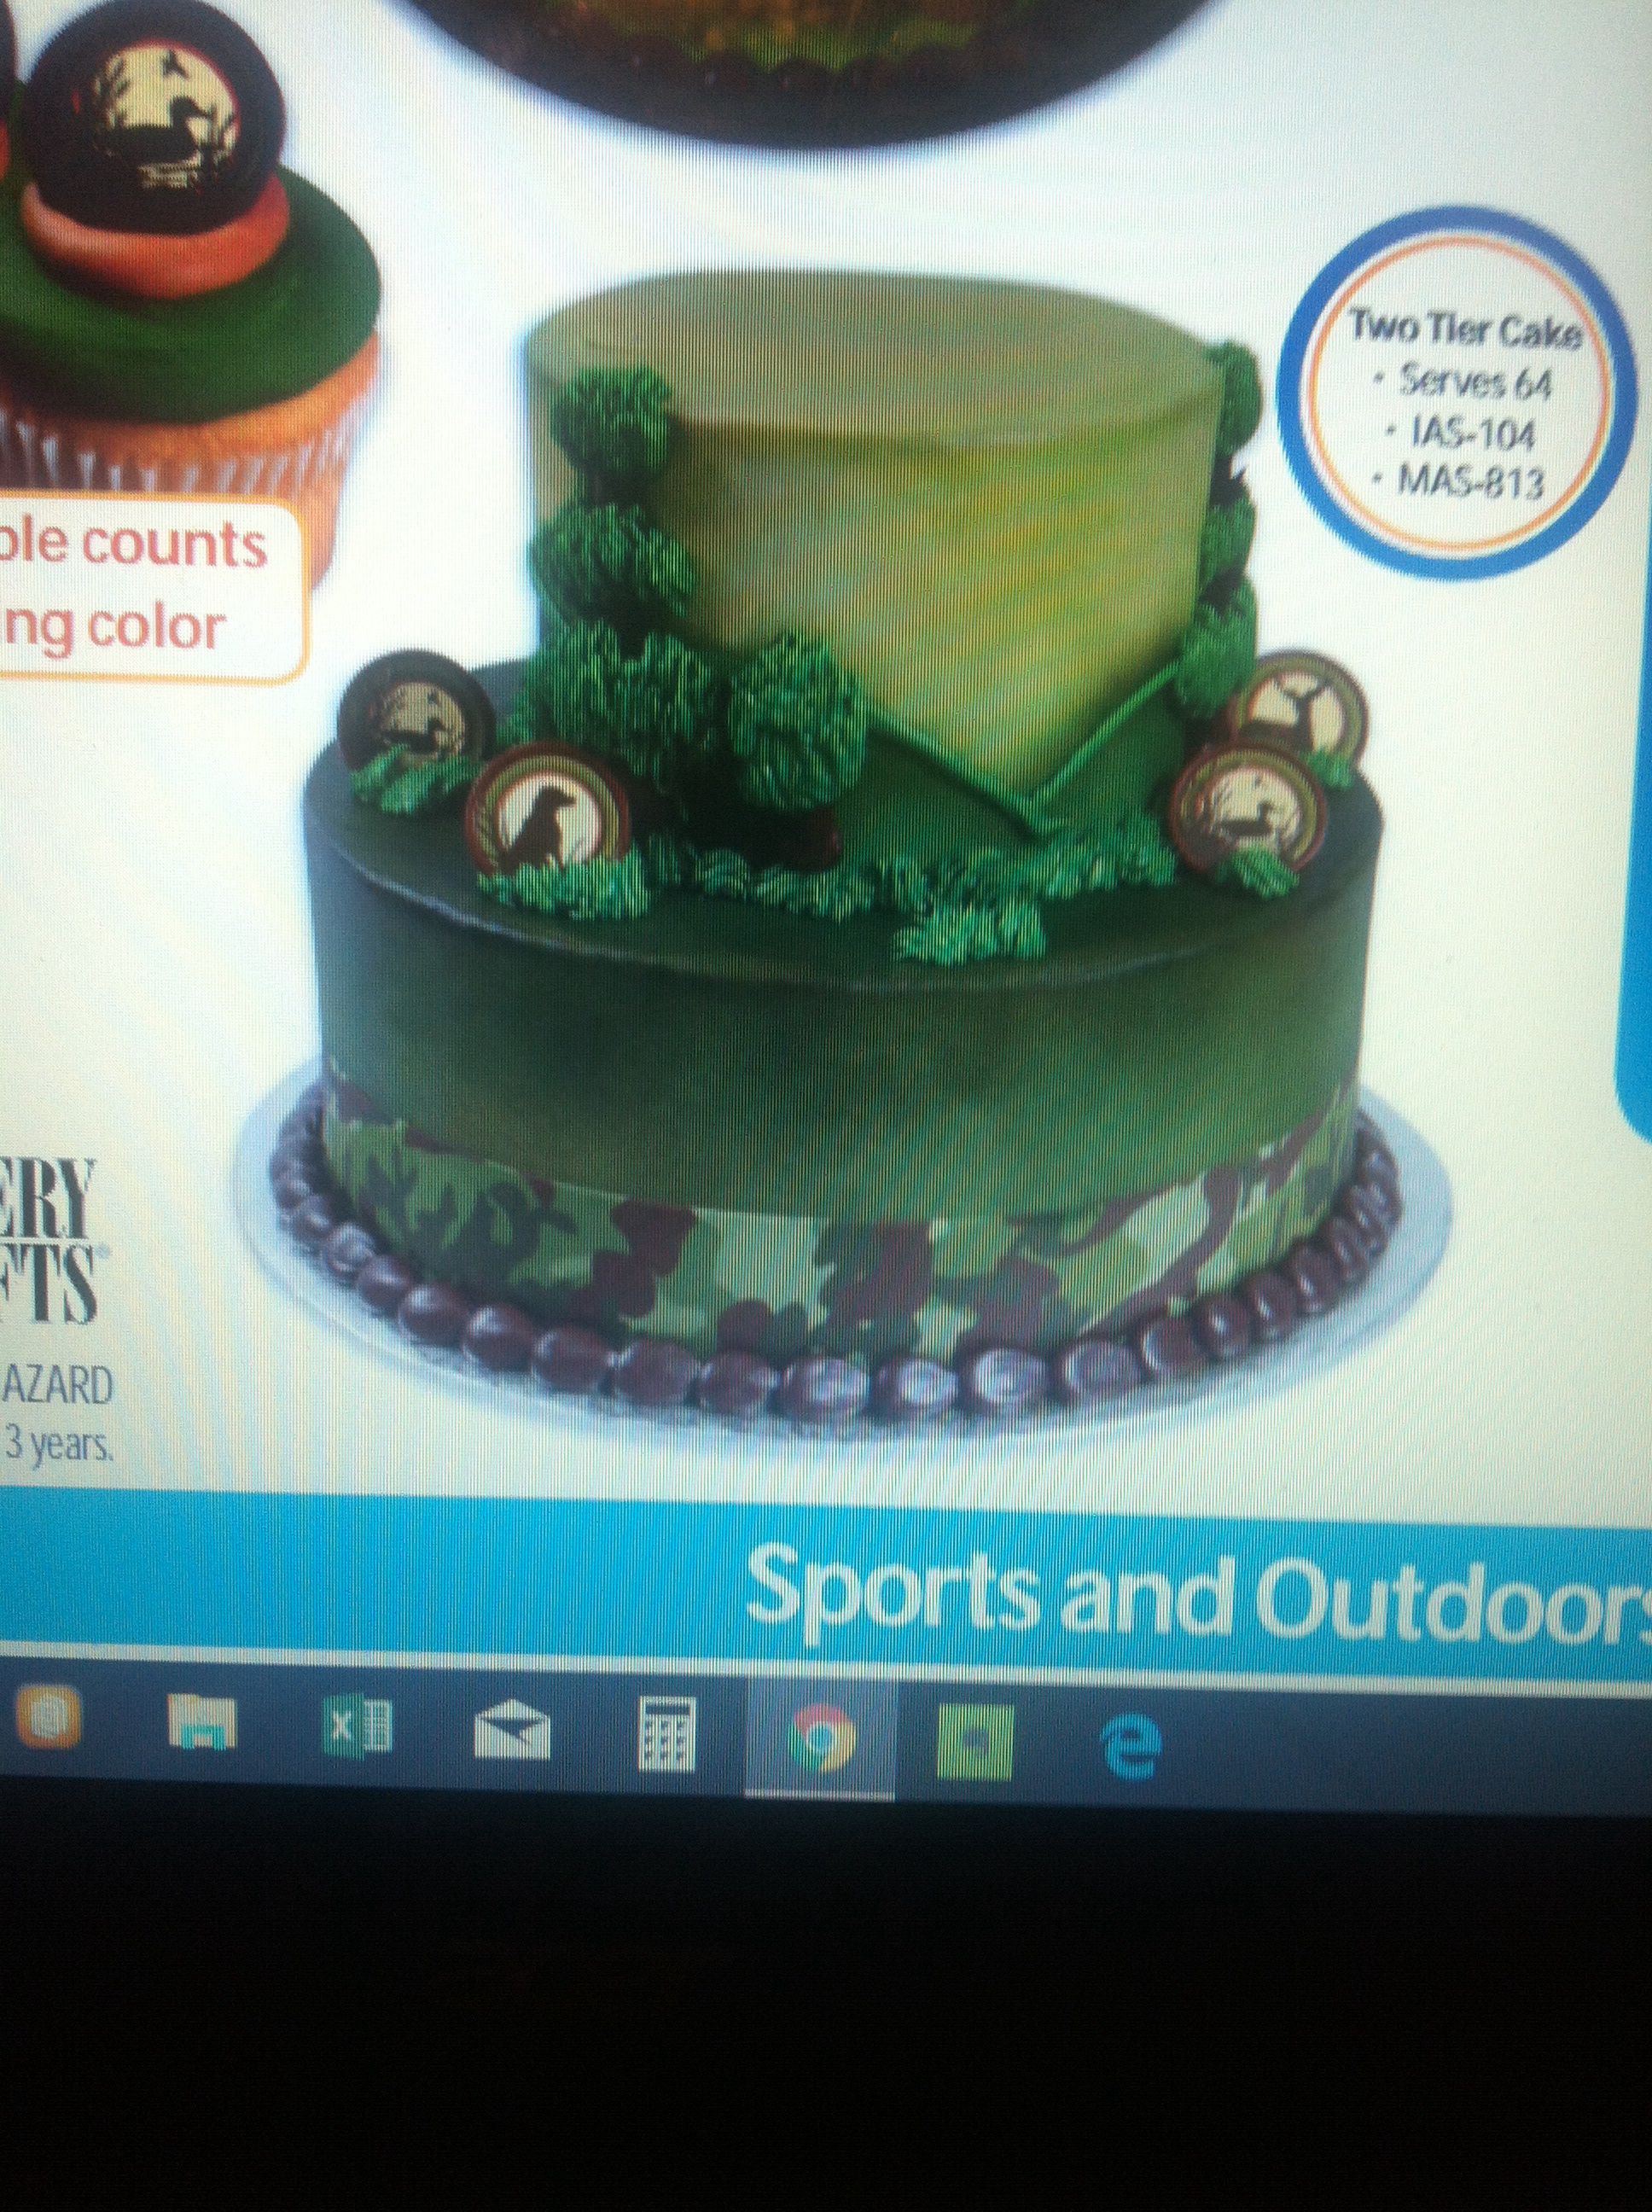 live to hunt cake for tiers walmart sports outdoors live to hunt cake 58 for 2 tiers walmart sports outdoors